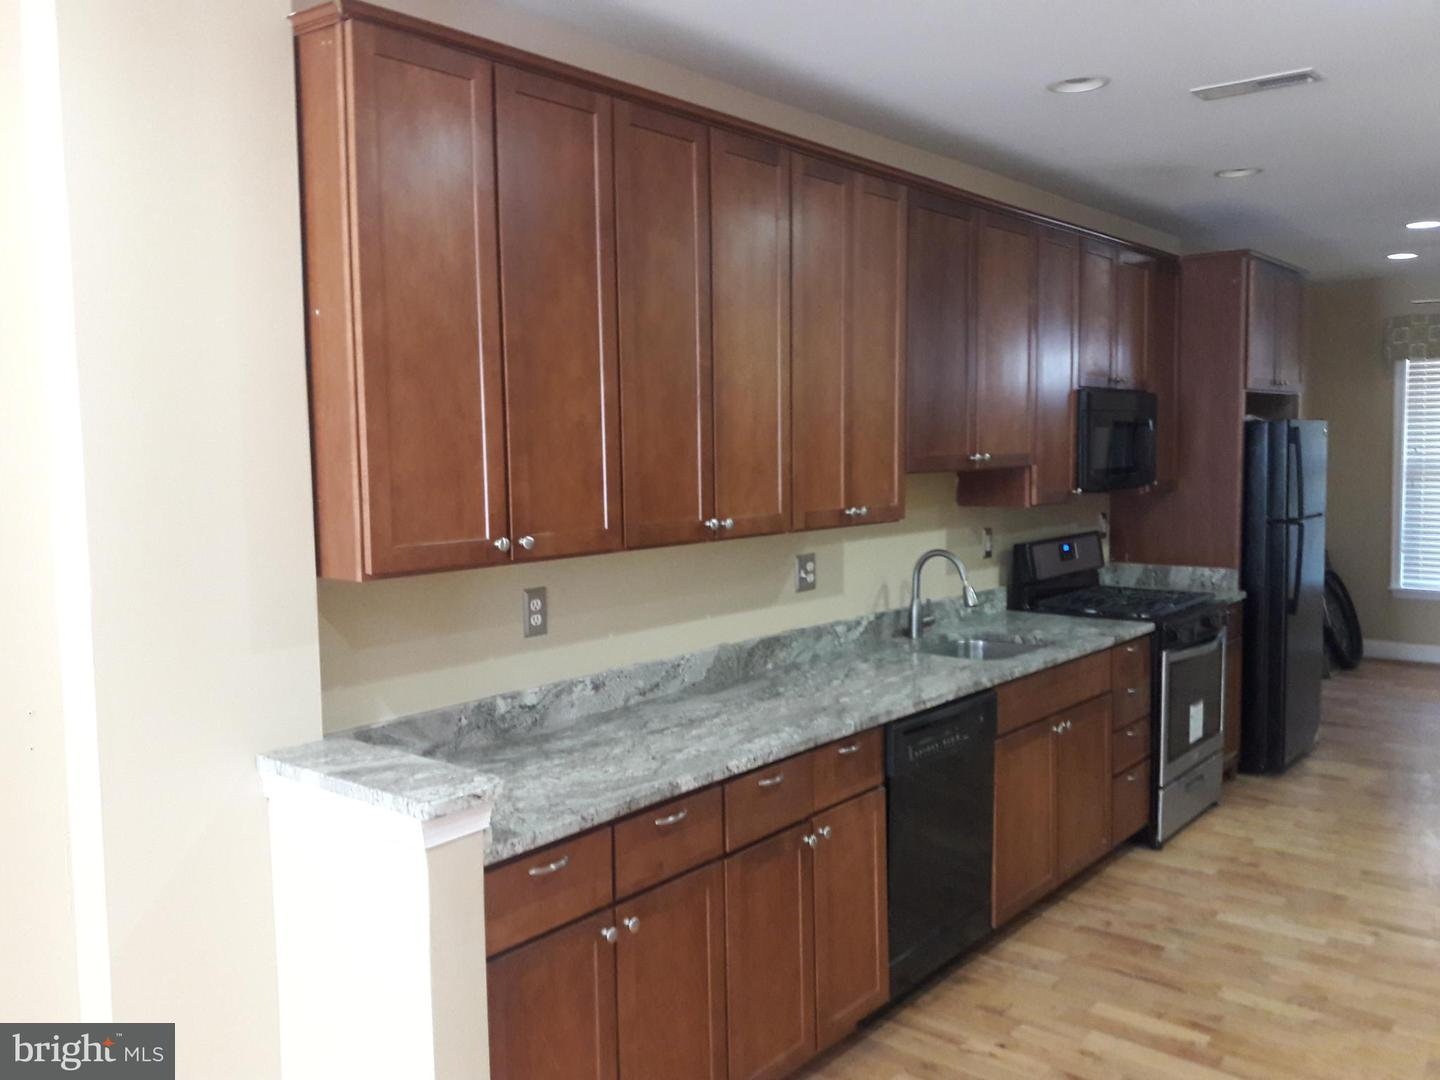 Other Residential for Rent at 214 Belnord Ave Baltimore, Maryland 21224 United States